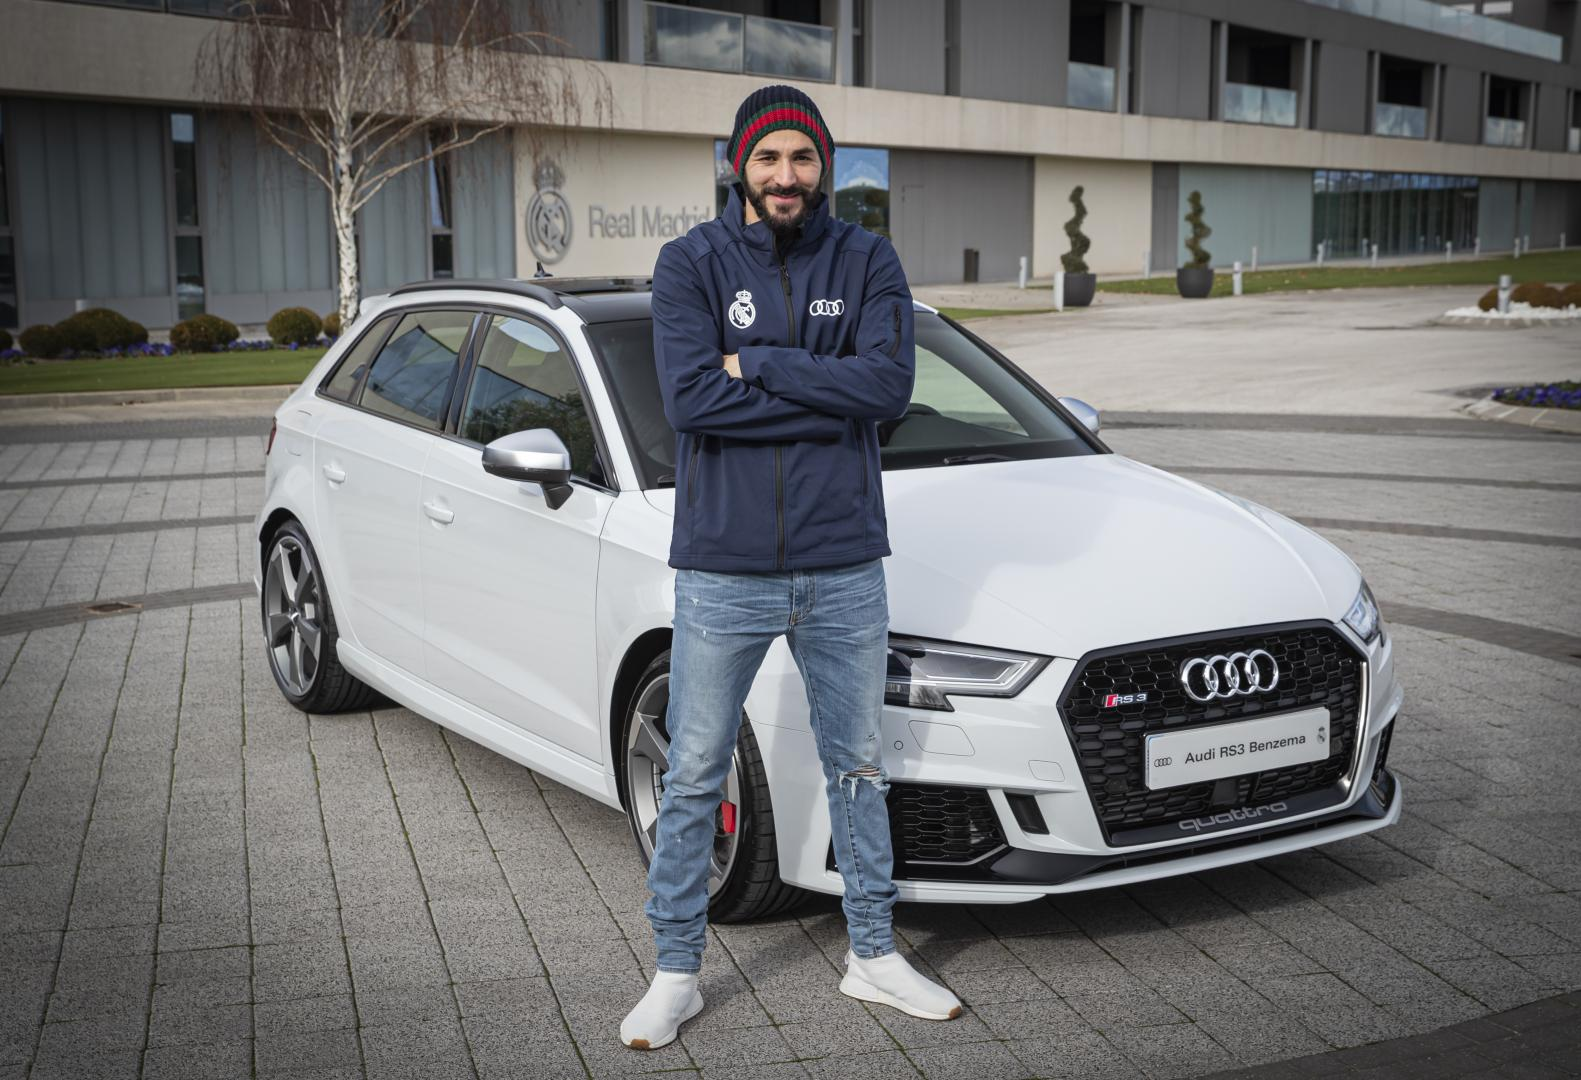 Real Madrid Audi RS3 Benzema